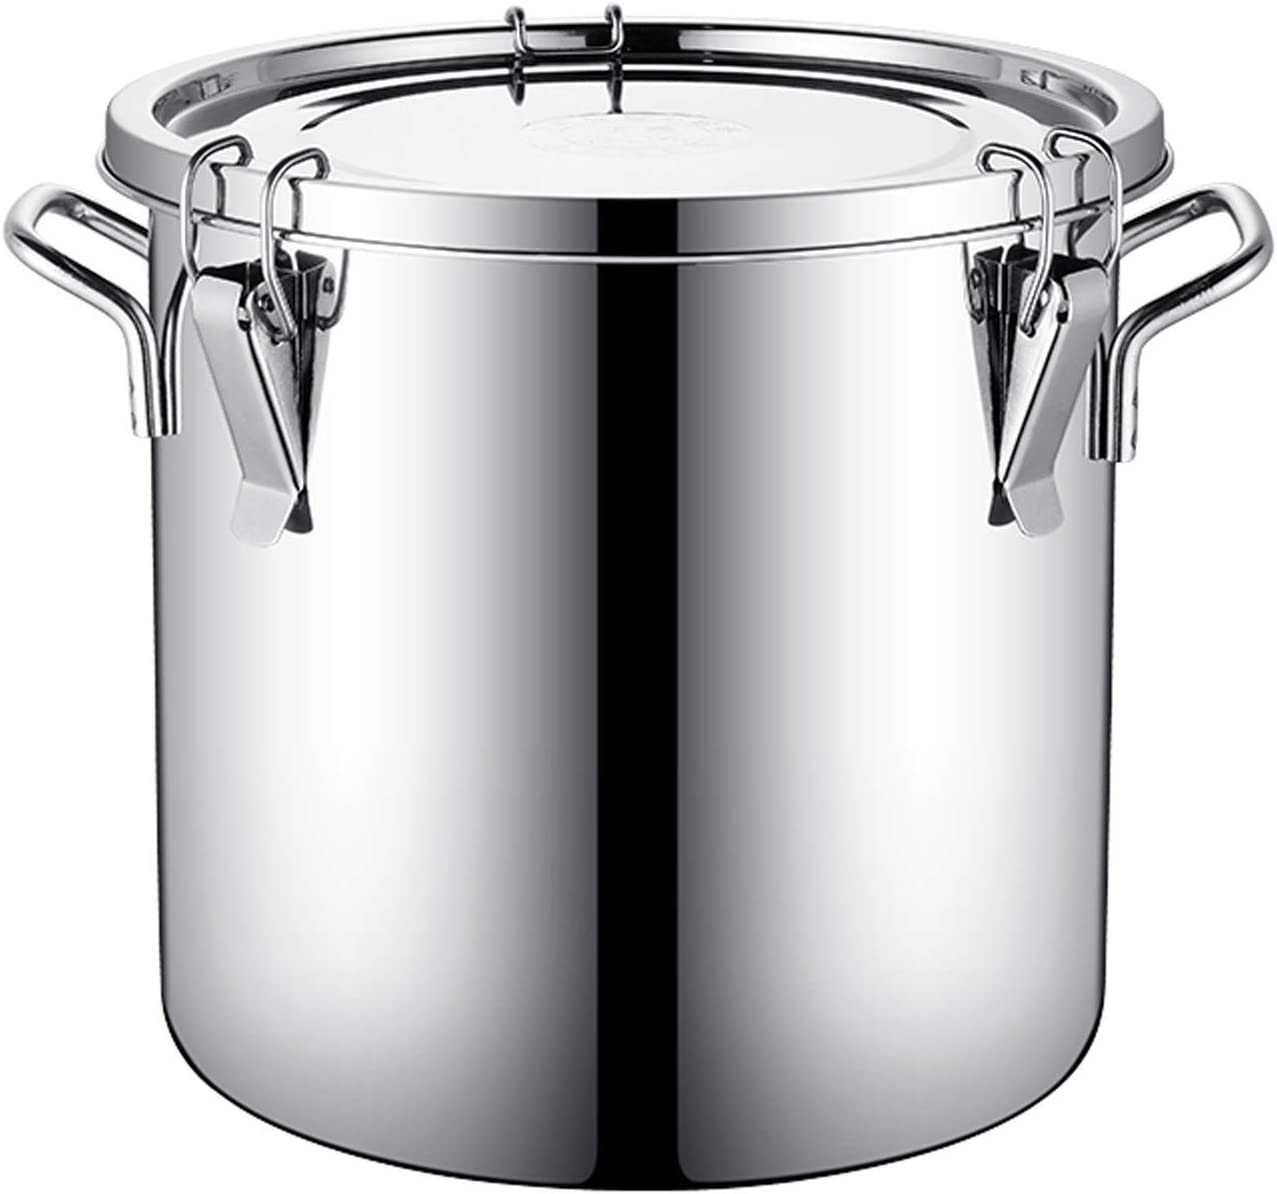 304 Stainless Steel Milk outlet Can with Storage Max 42% OFF Co Food Lids Bins Tote